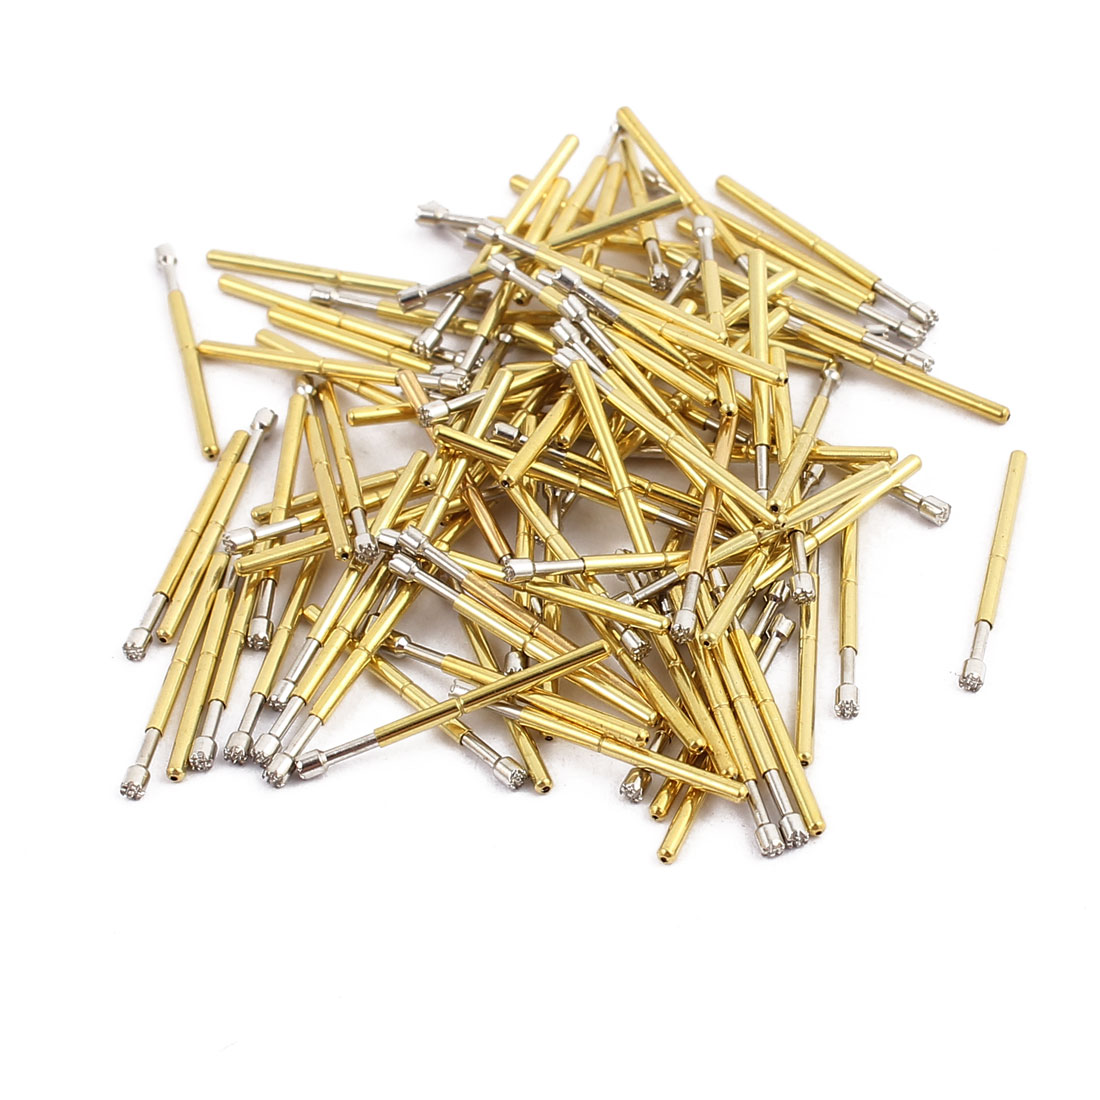 100pcs P75-H2 1.0mm Dia 16.5mm Length Metal Spring Pressure Test Probe Needle